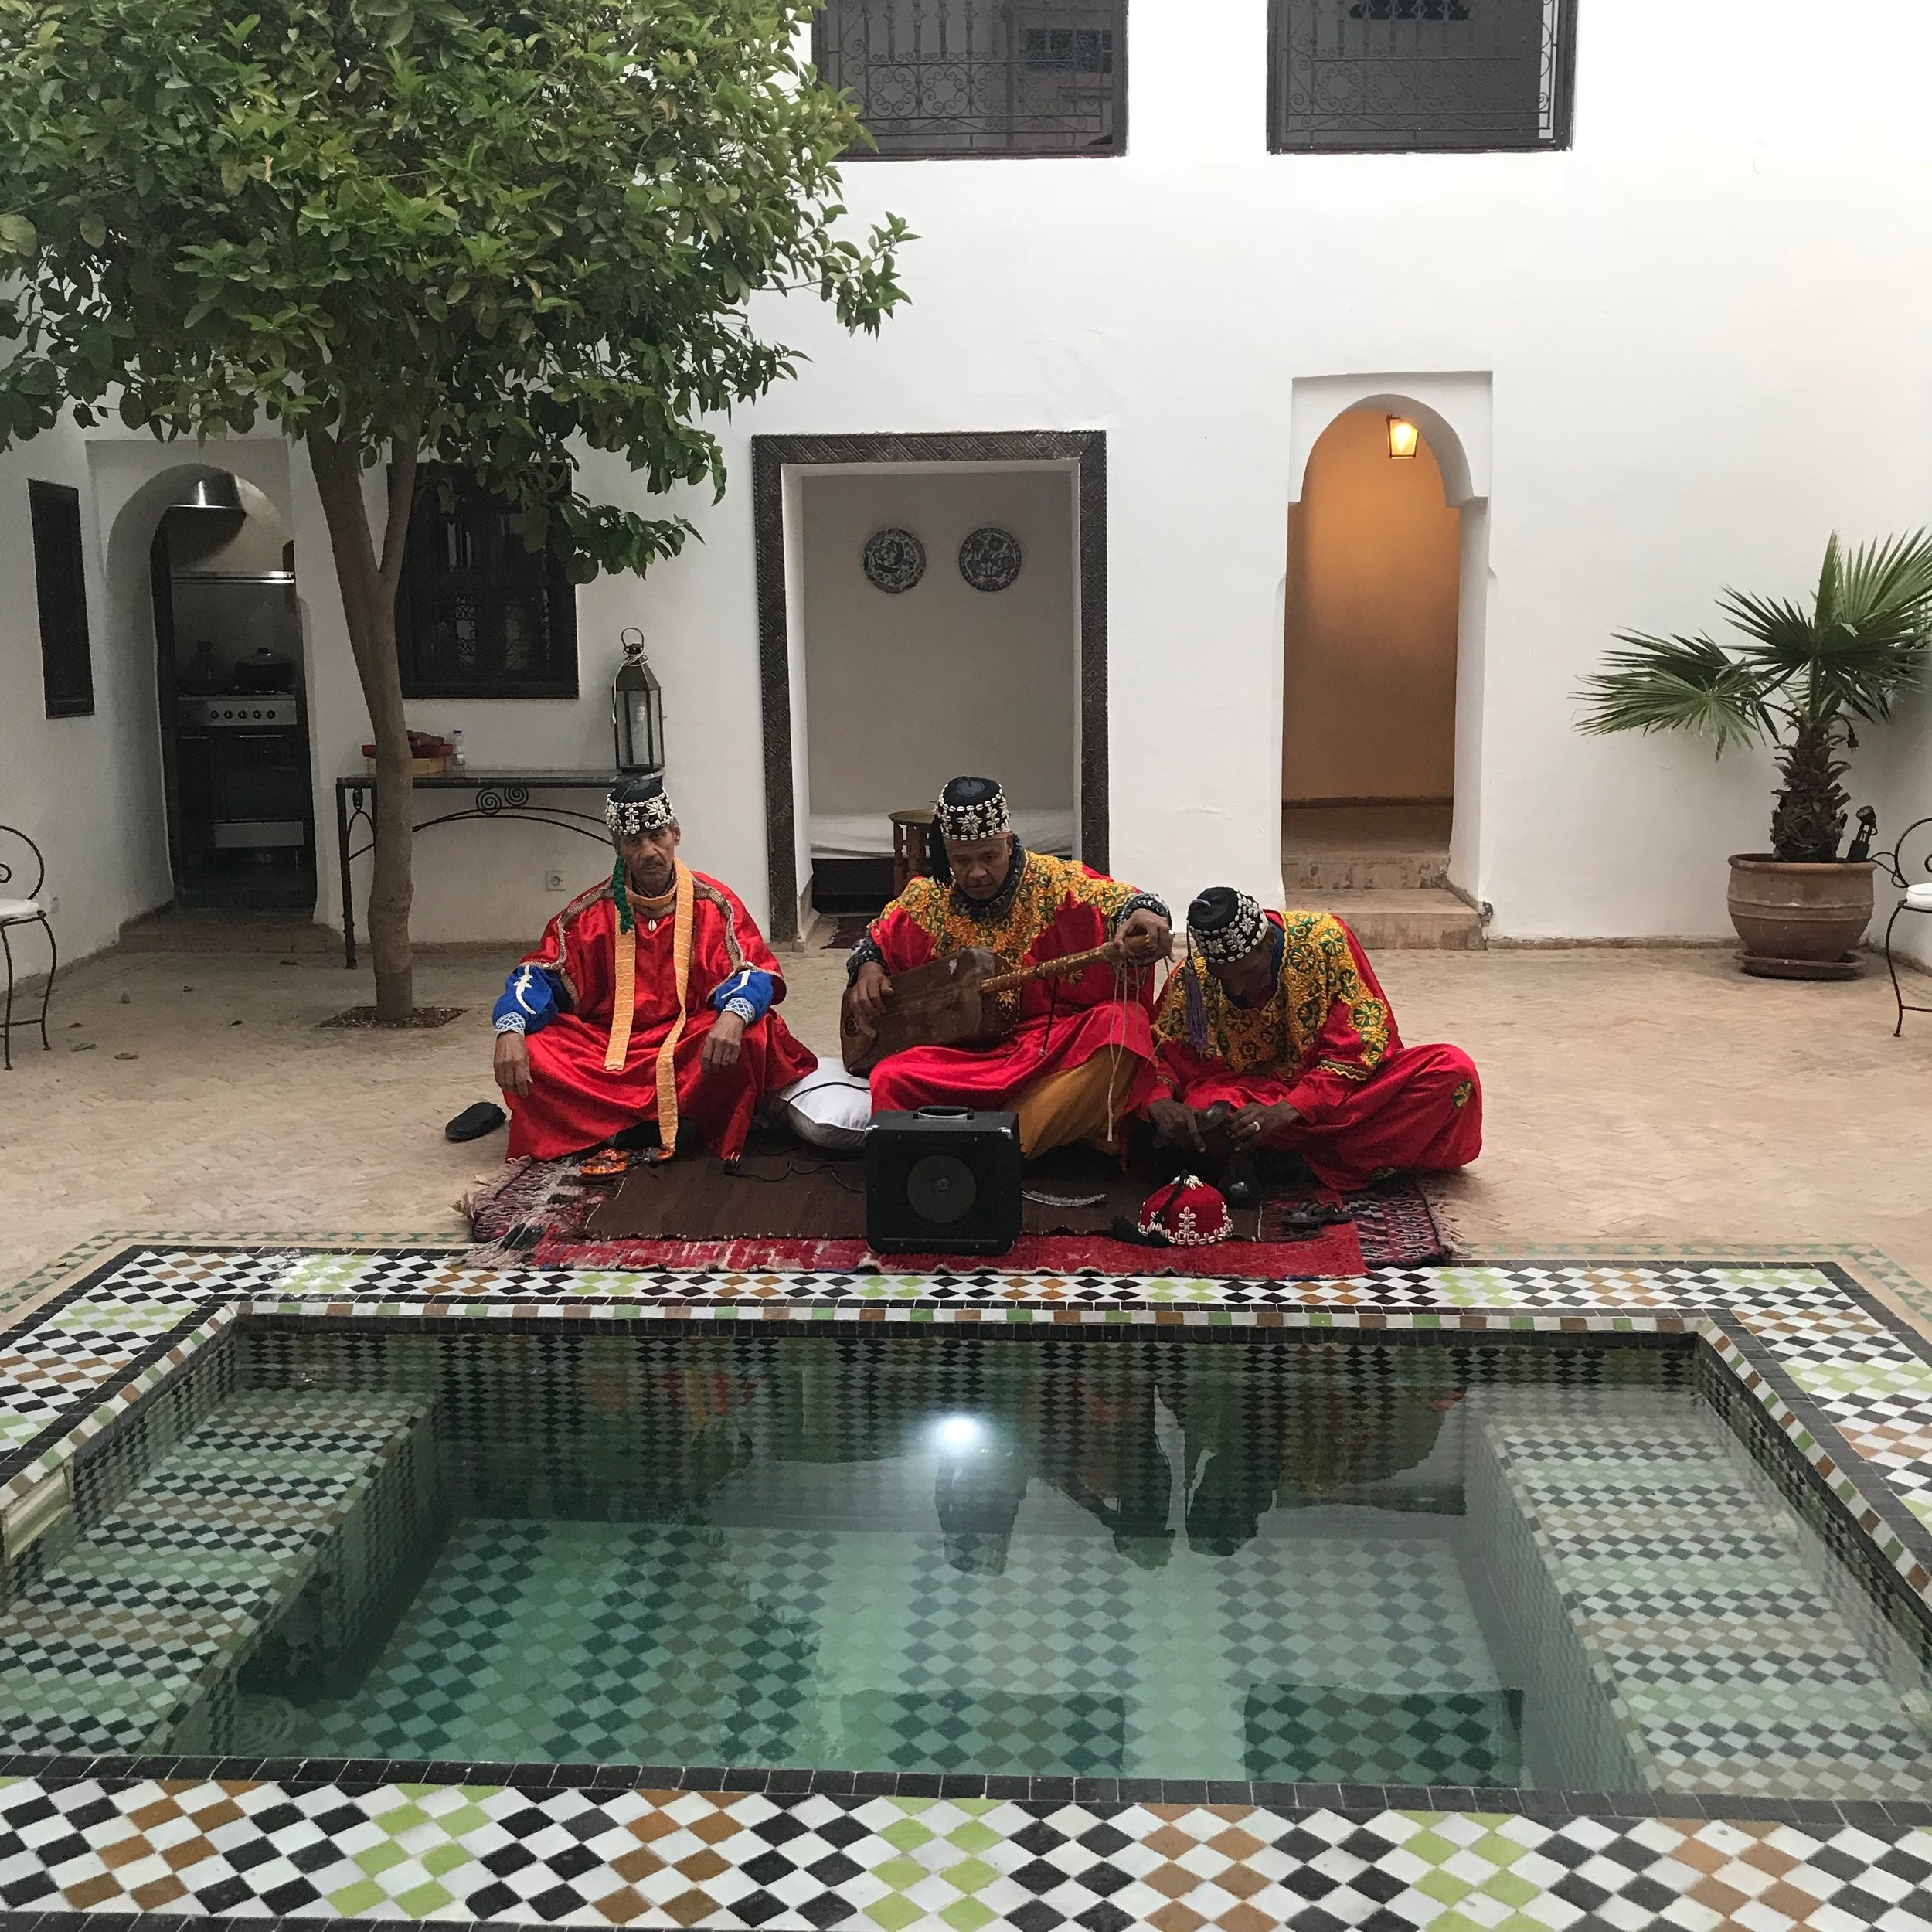 Lost & Found Marrakech April 2018 GNAWA.JPG